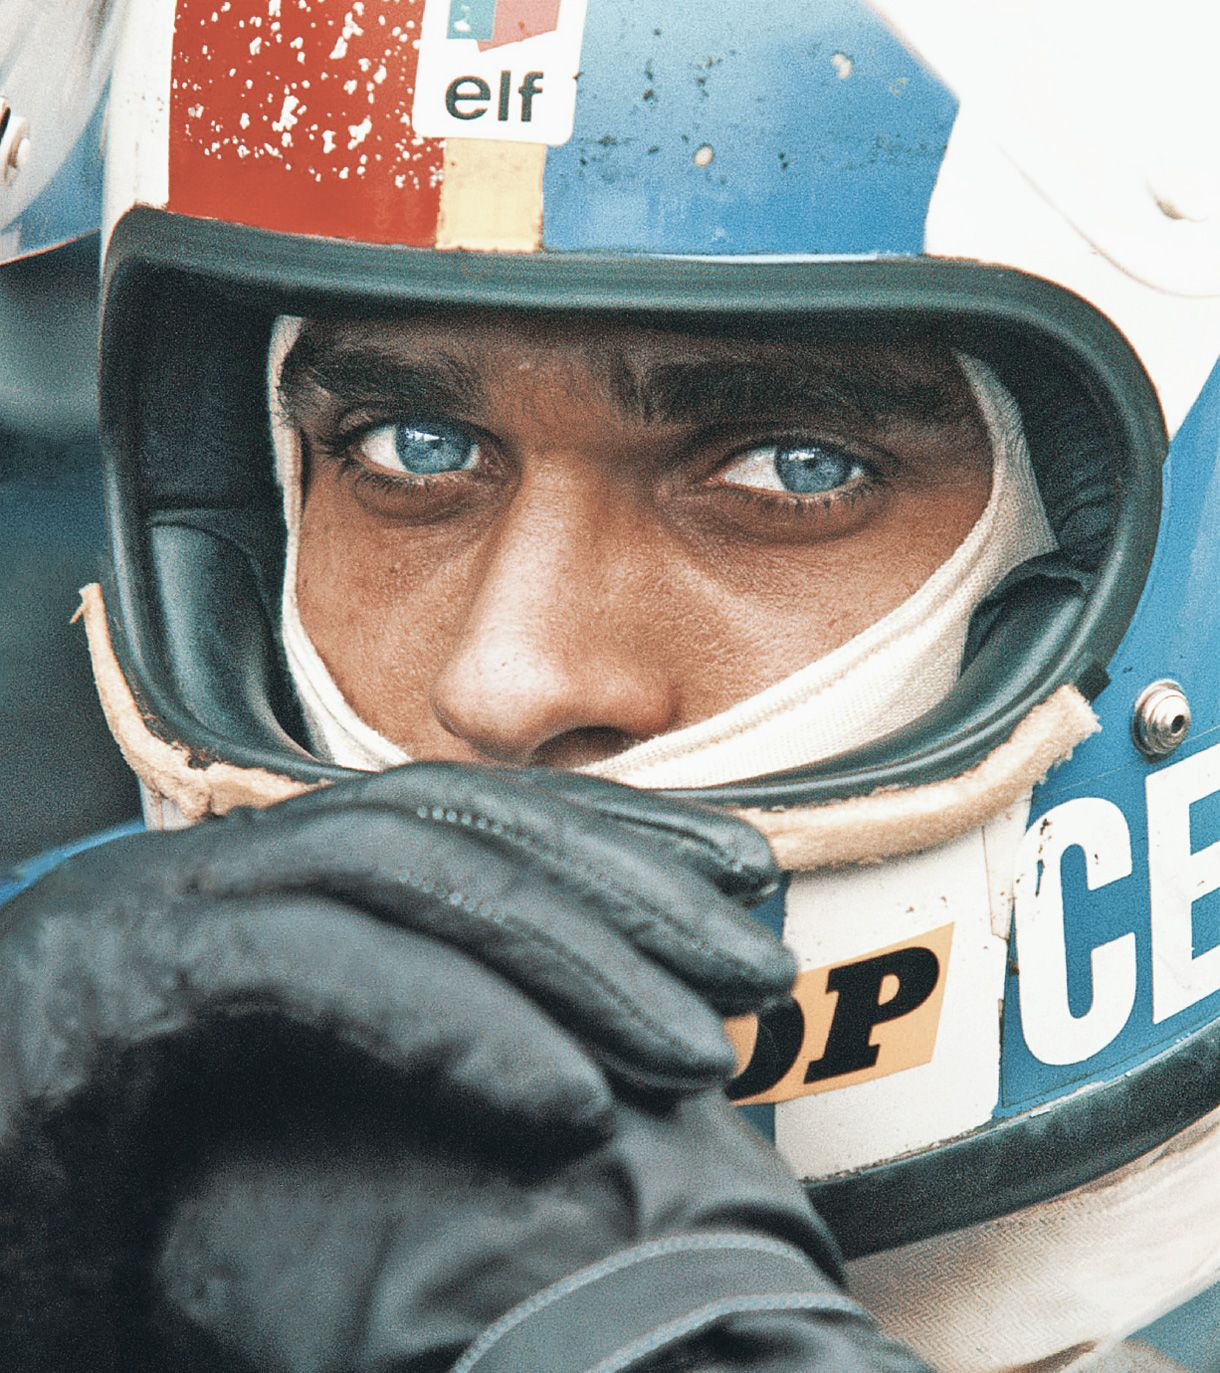 François Cevert---was a French racing drive. At Watkins Glen[1973], with Jackie Stewart having already clinched his third World Championship, Cevert was KILLED during Saturday morning qualifying, while battling for pole position with Ronnie Peterson.